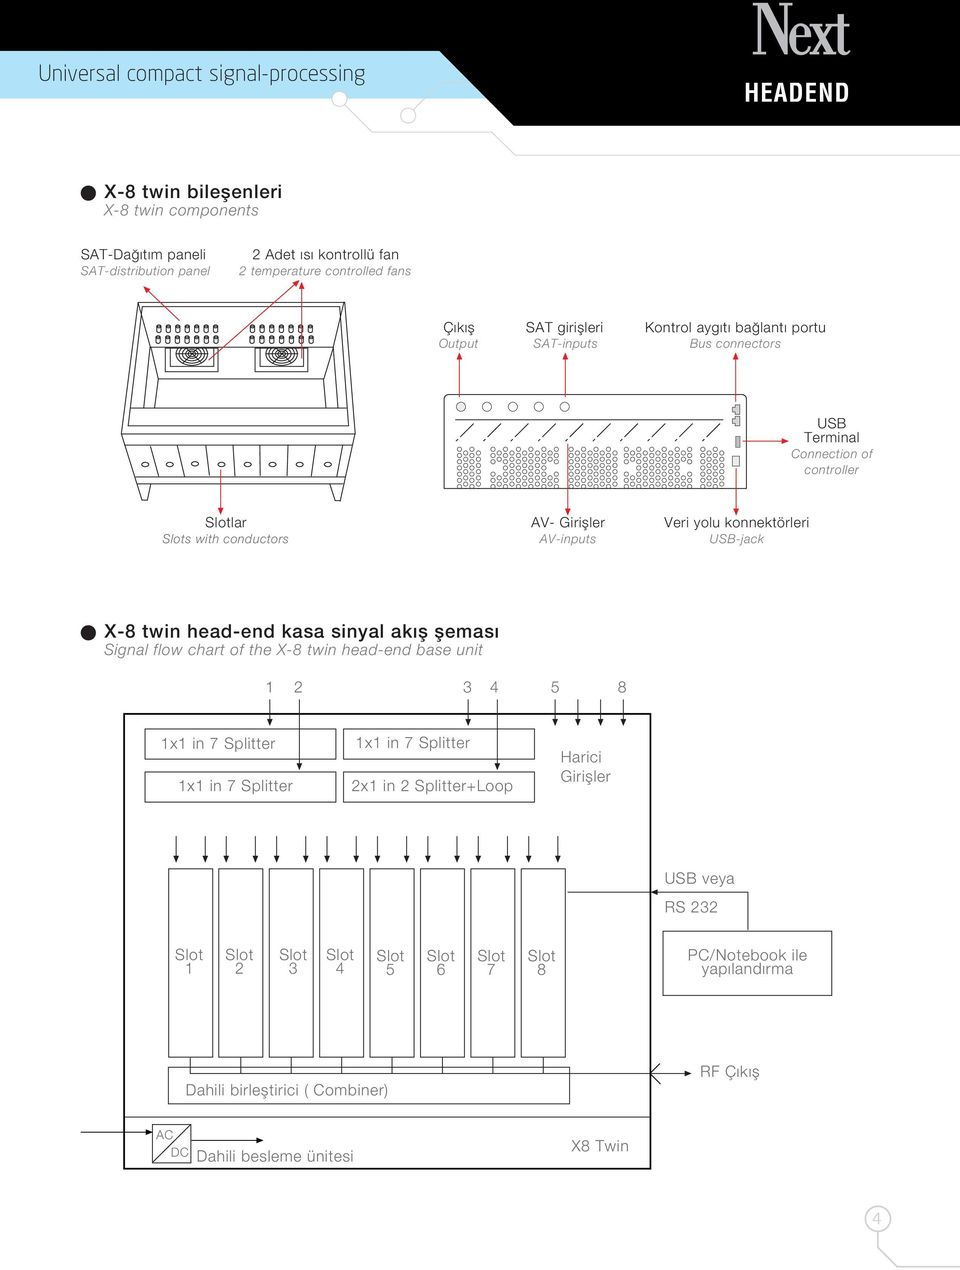 USB-jack X-8 twin head-end kasa sinyal ak fl flemas Signal flow chart of the X-8 twin head-end base unit 1 2 3 4 5 8 1x1 in 7 Splitter 1x1 in 7 Splitter 1x1 in 7 Splitter 2x1 in 2